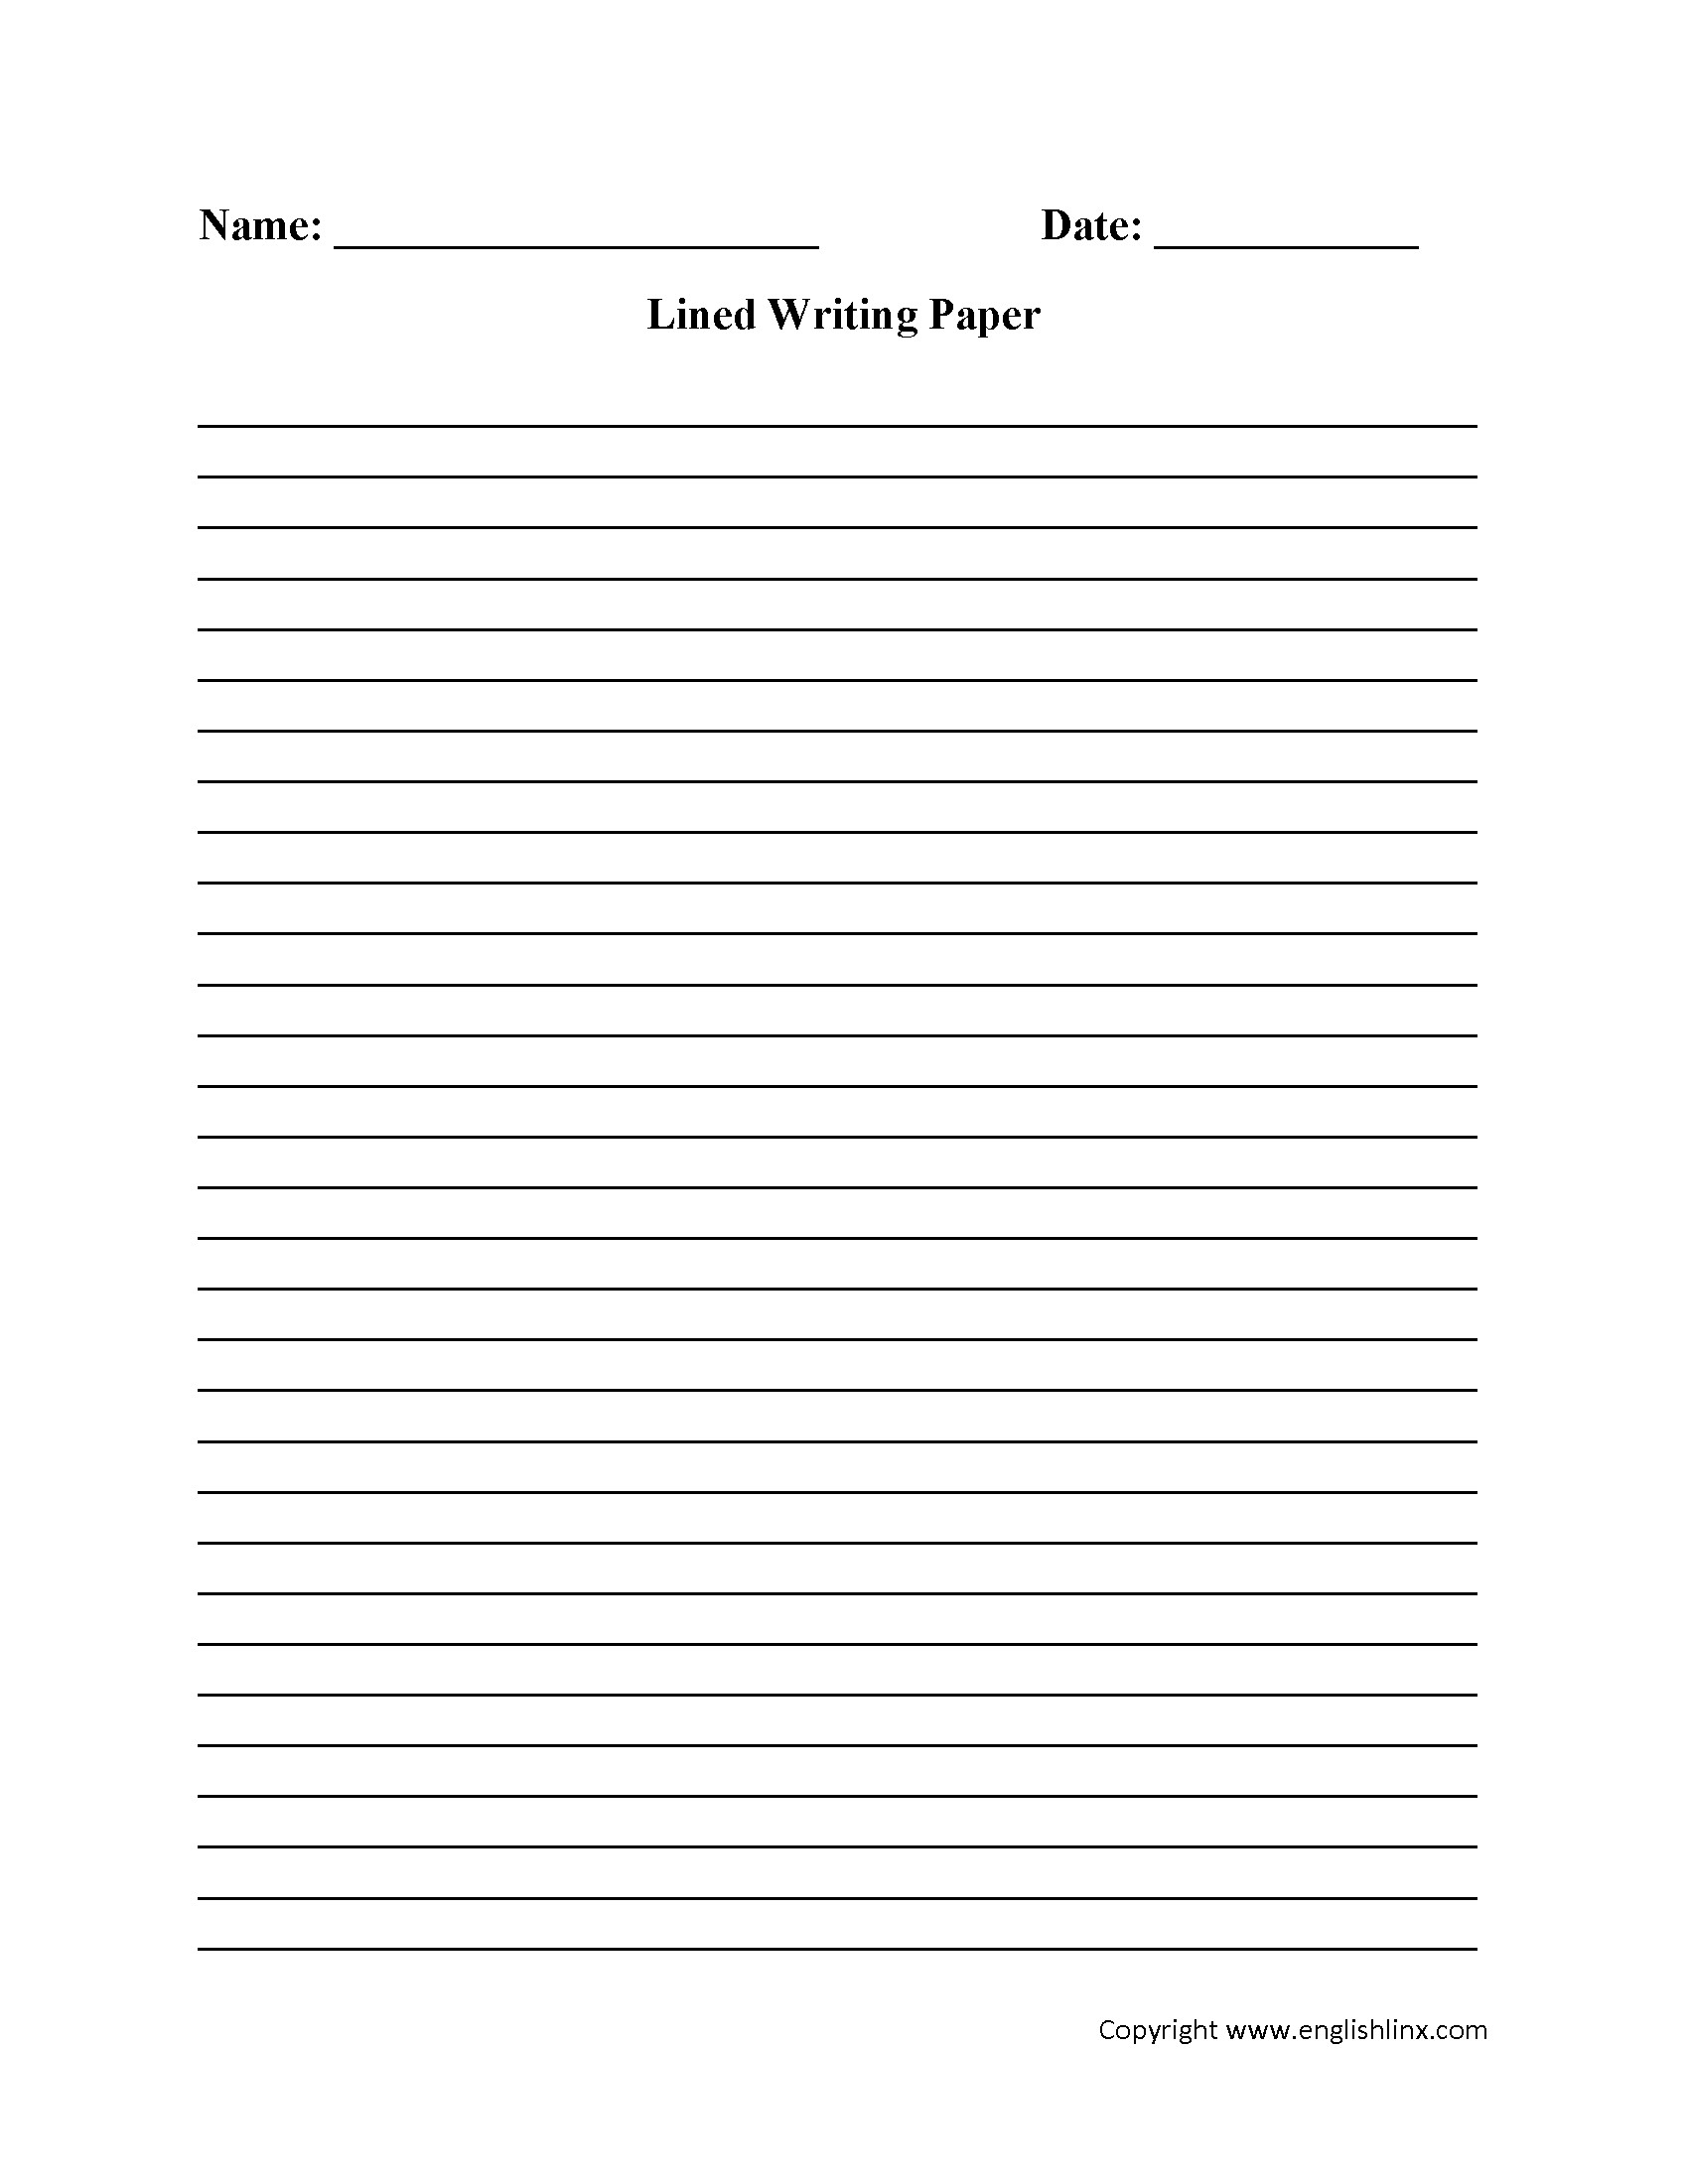 Writing Worksheets | Lined Writing Paper Worksheets - Free Printable Writing Paper For Adults